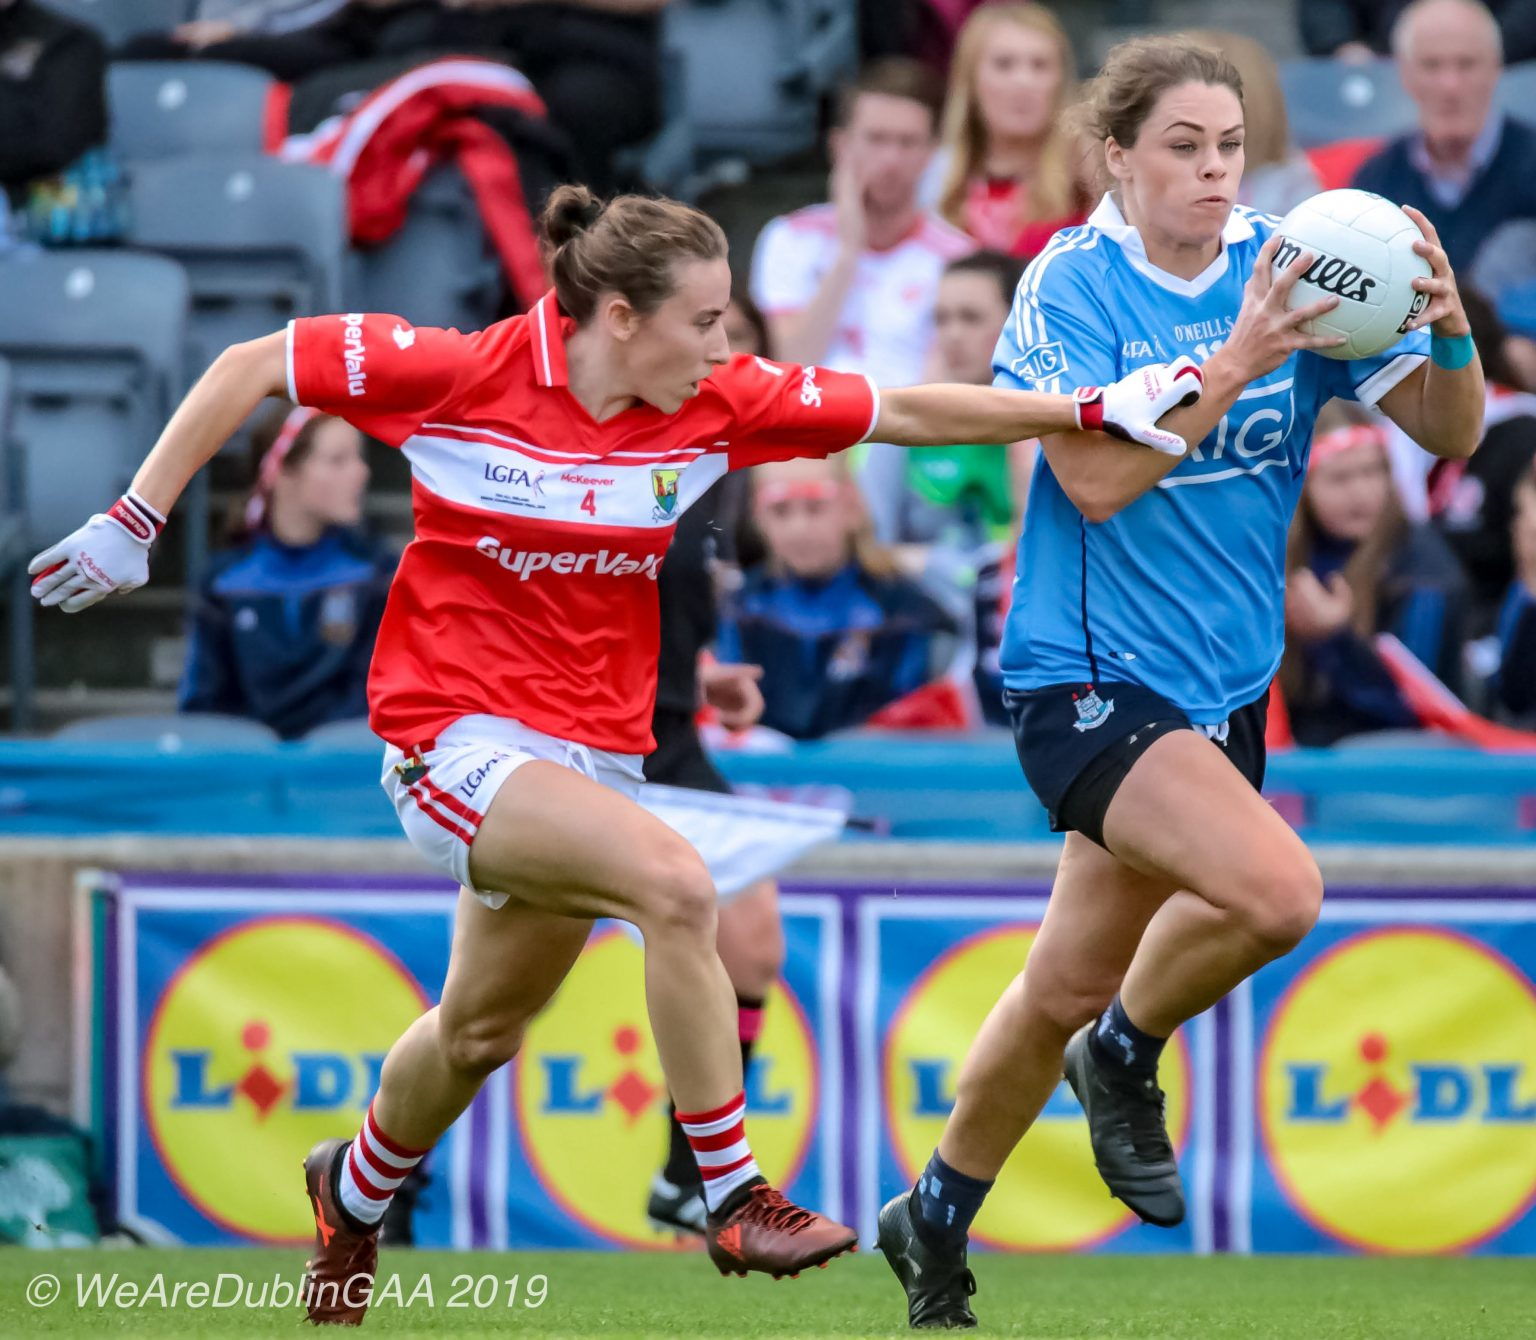 Dublin Ladies Footballer in a sky blue jersey and navy shorts raced away from a Cork player in a red jersey and white shorts the two teams meet in the league semi final and the LGFA will provide Facebook Live Coverage of the game.